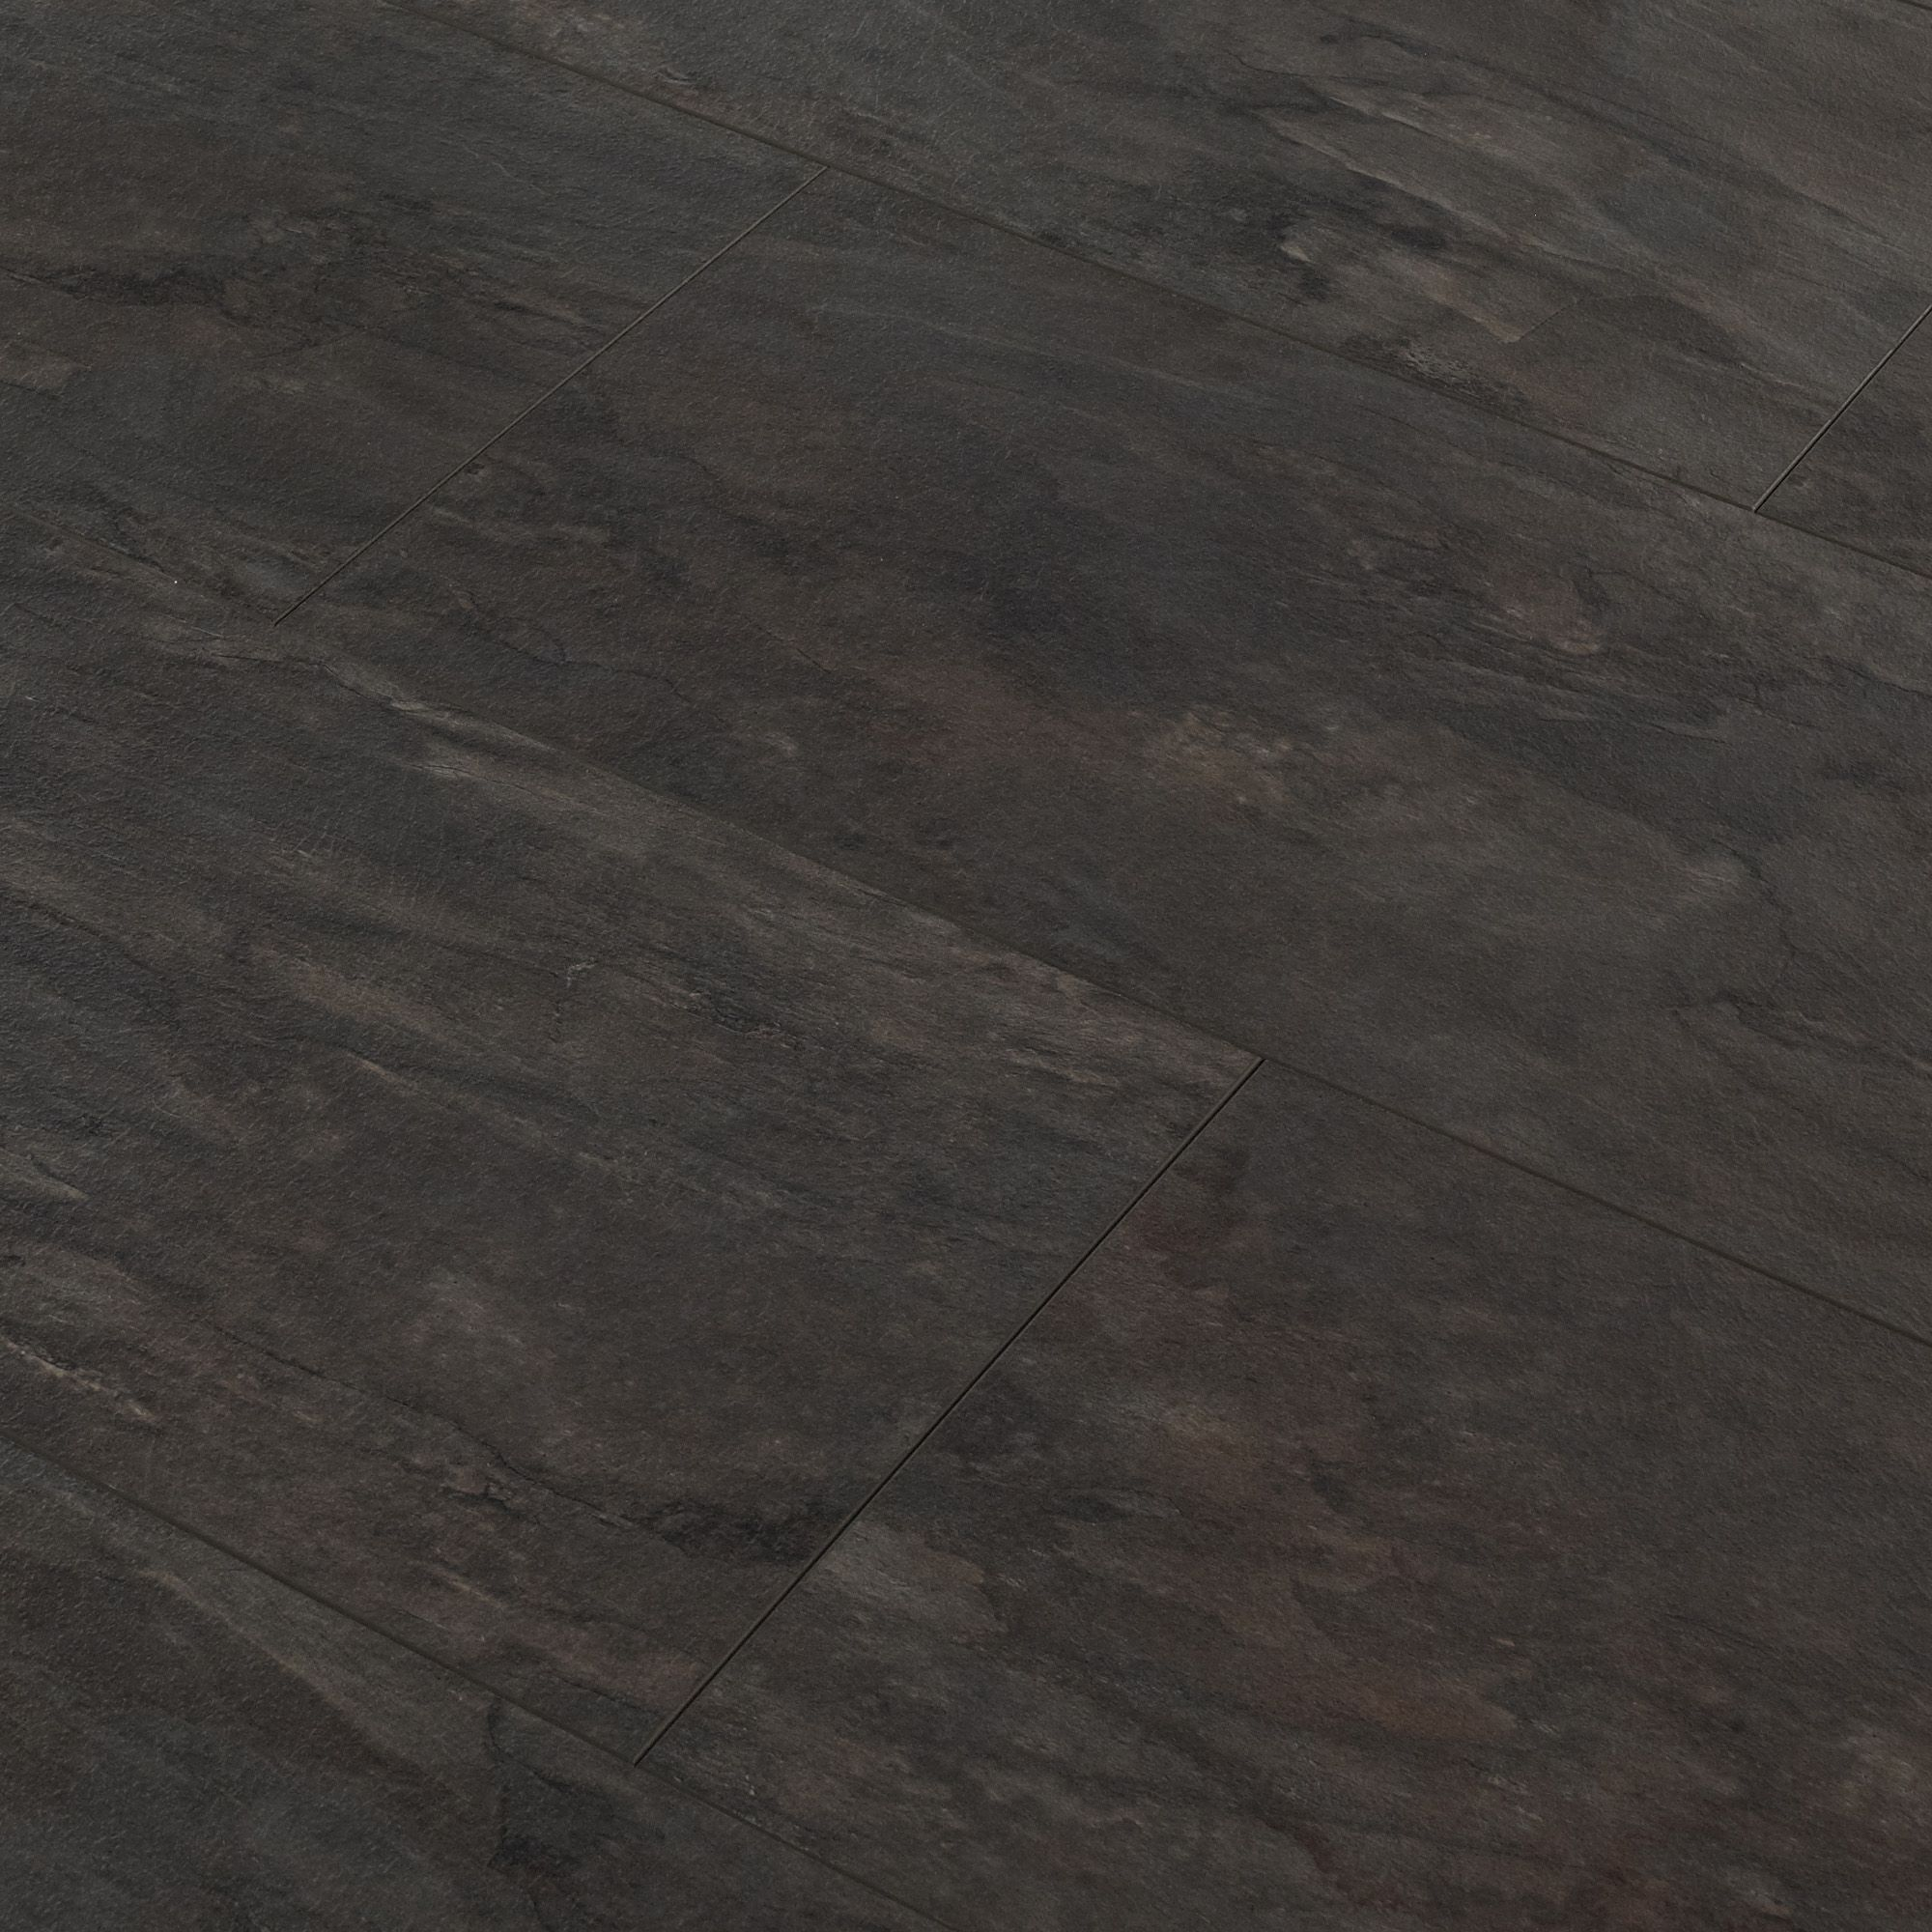 Intermezzo Grey Slate Effect Laminate Flooring 2 05 M² Sample Departments Diy At B Q